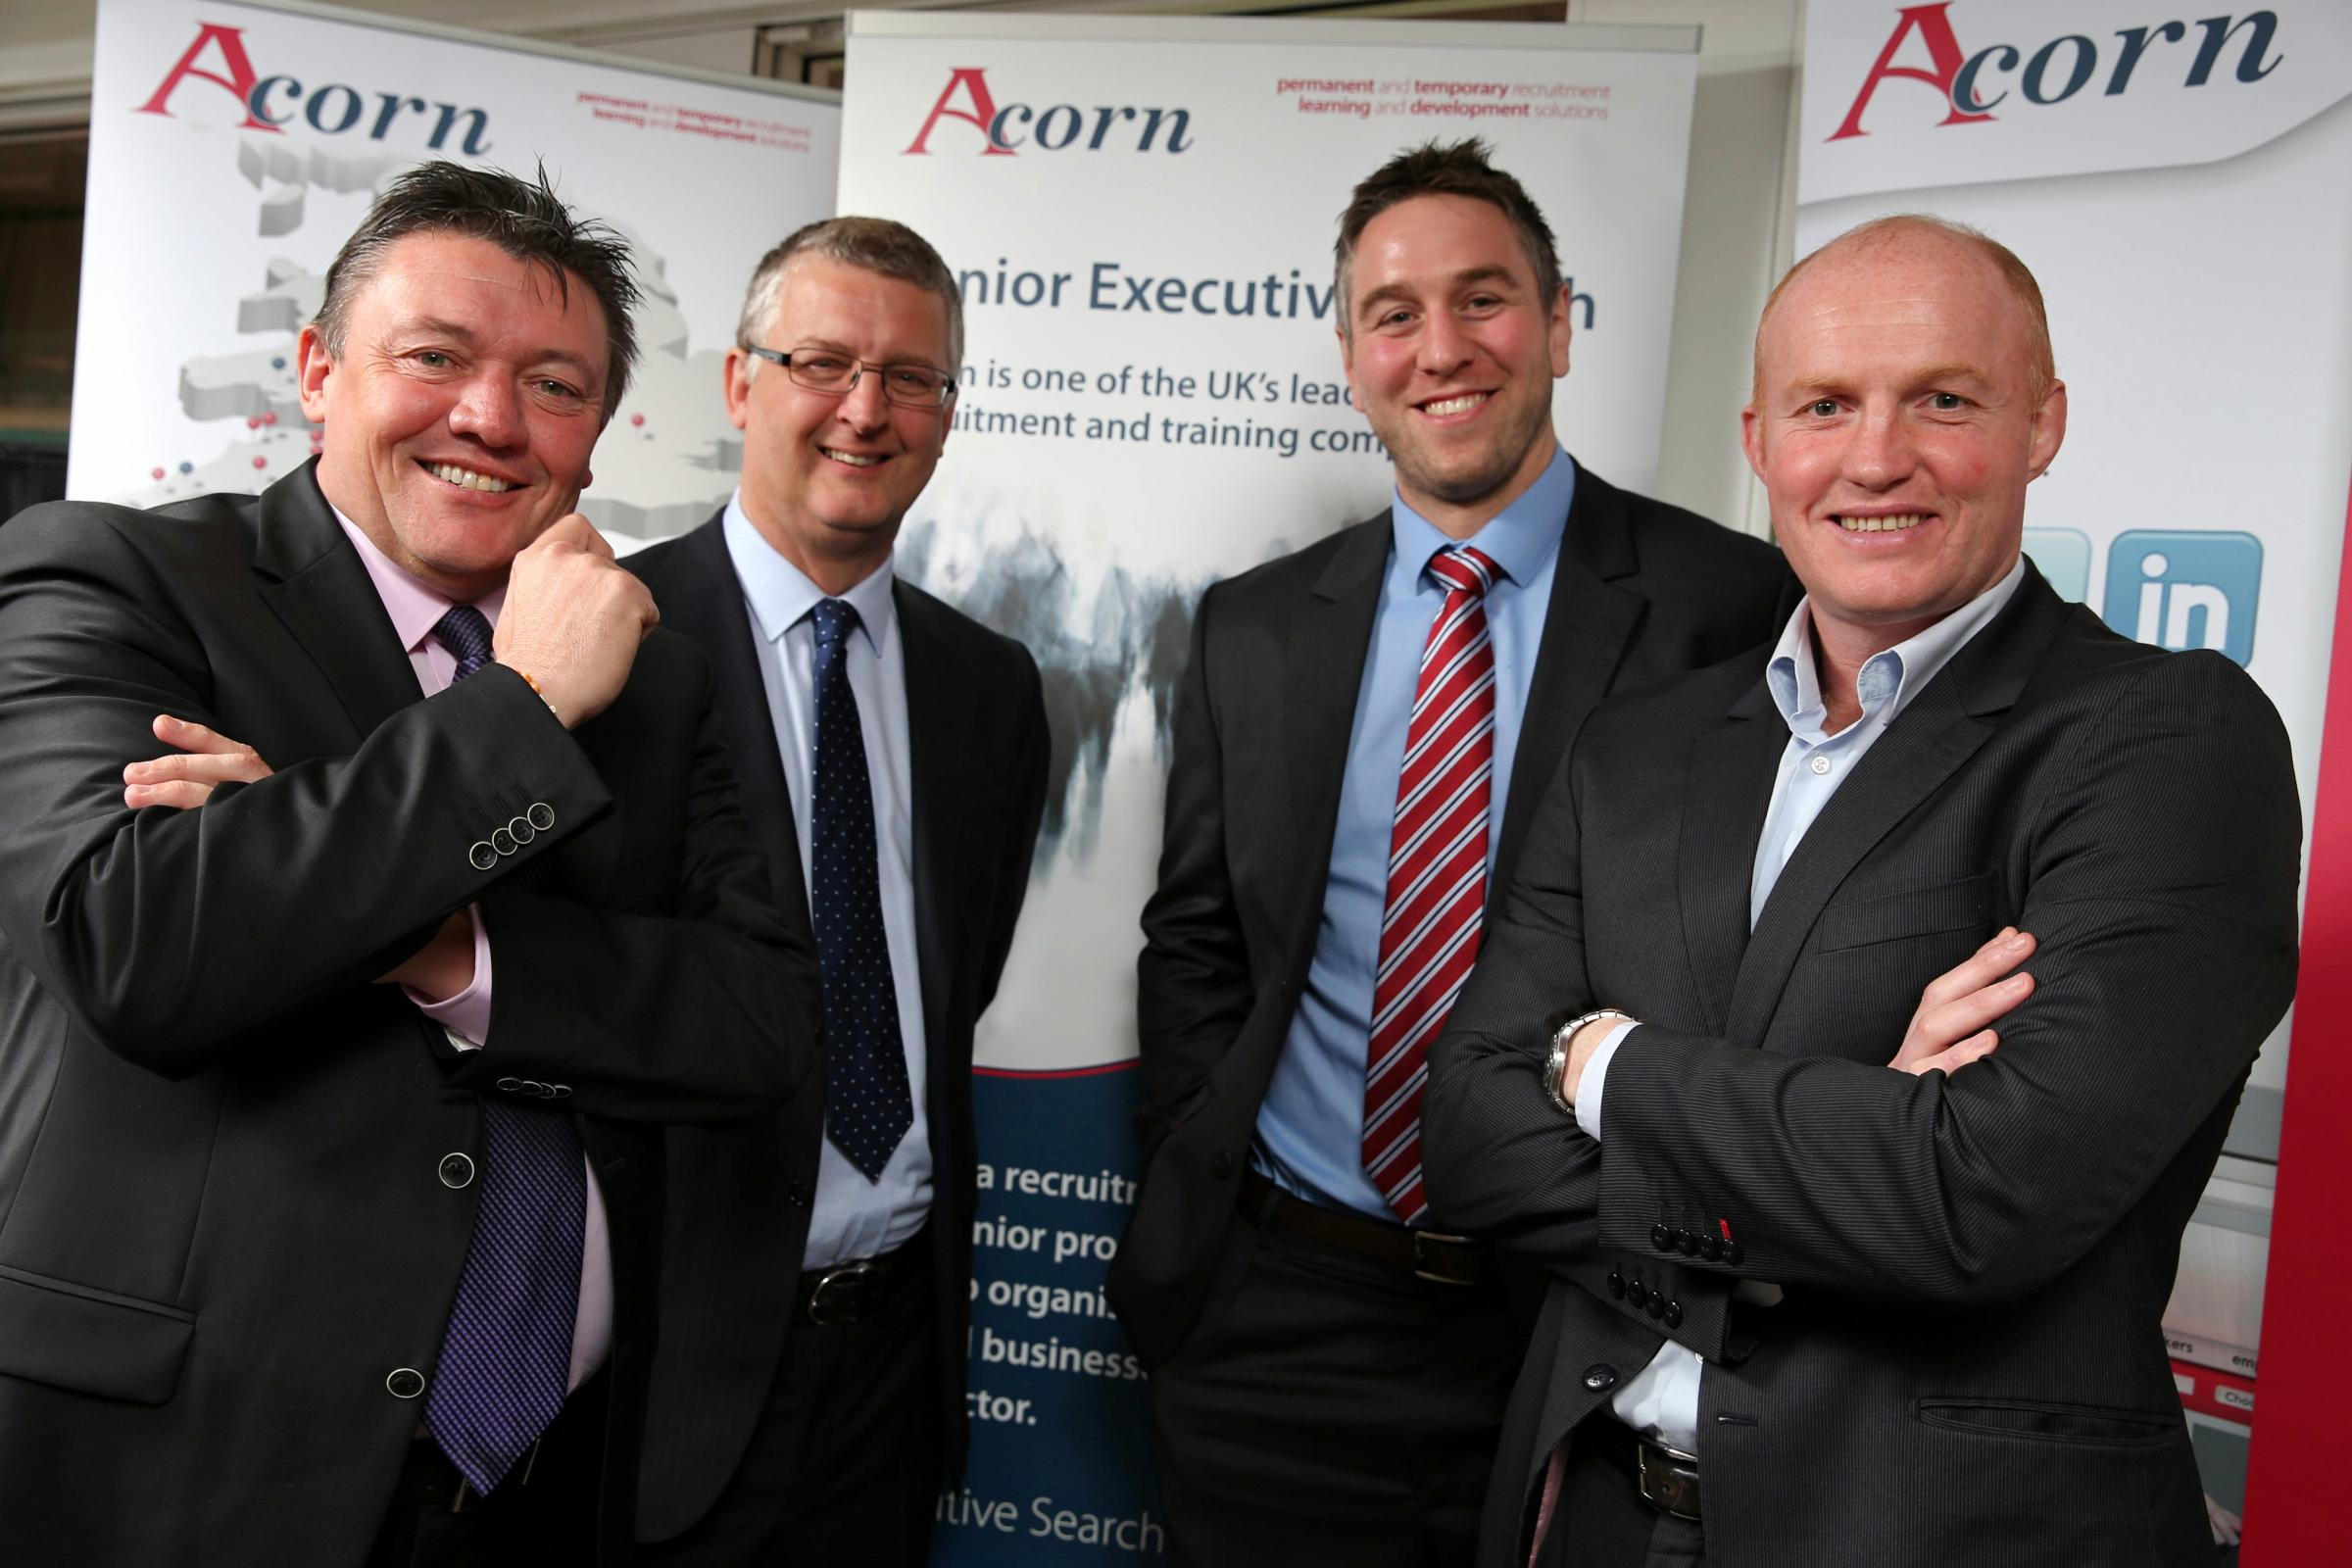 acorn launches new senior executive search south wales argus